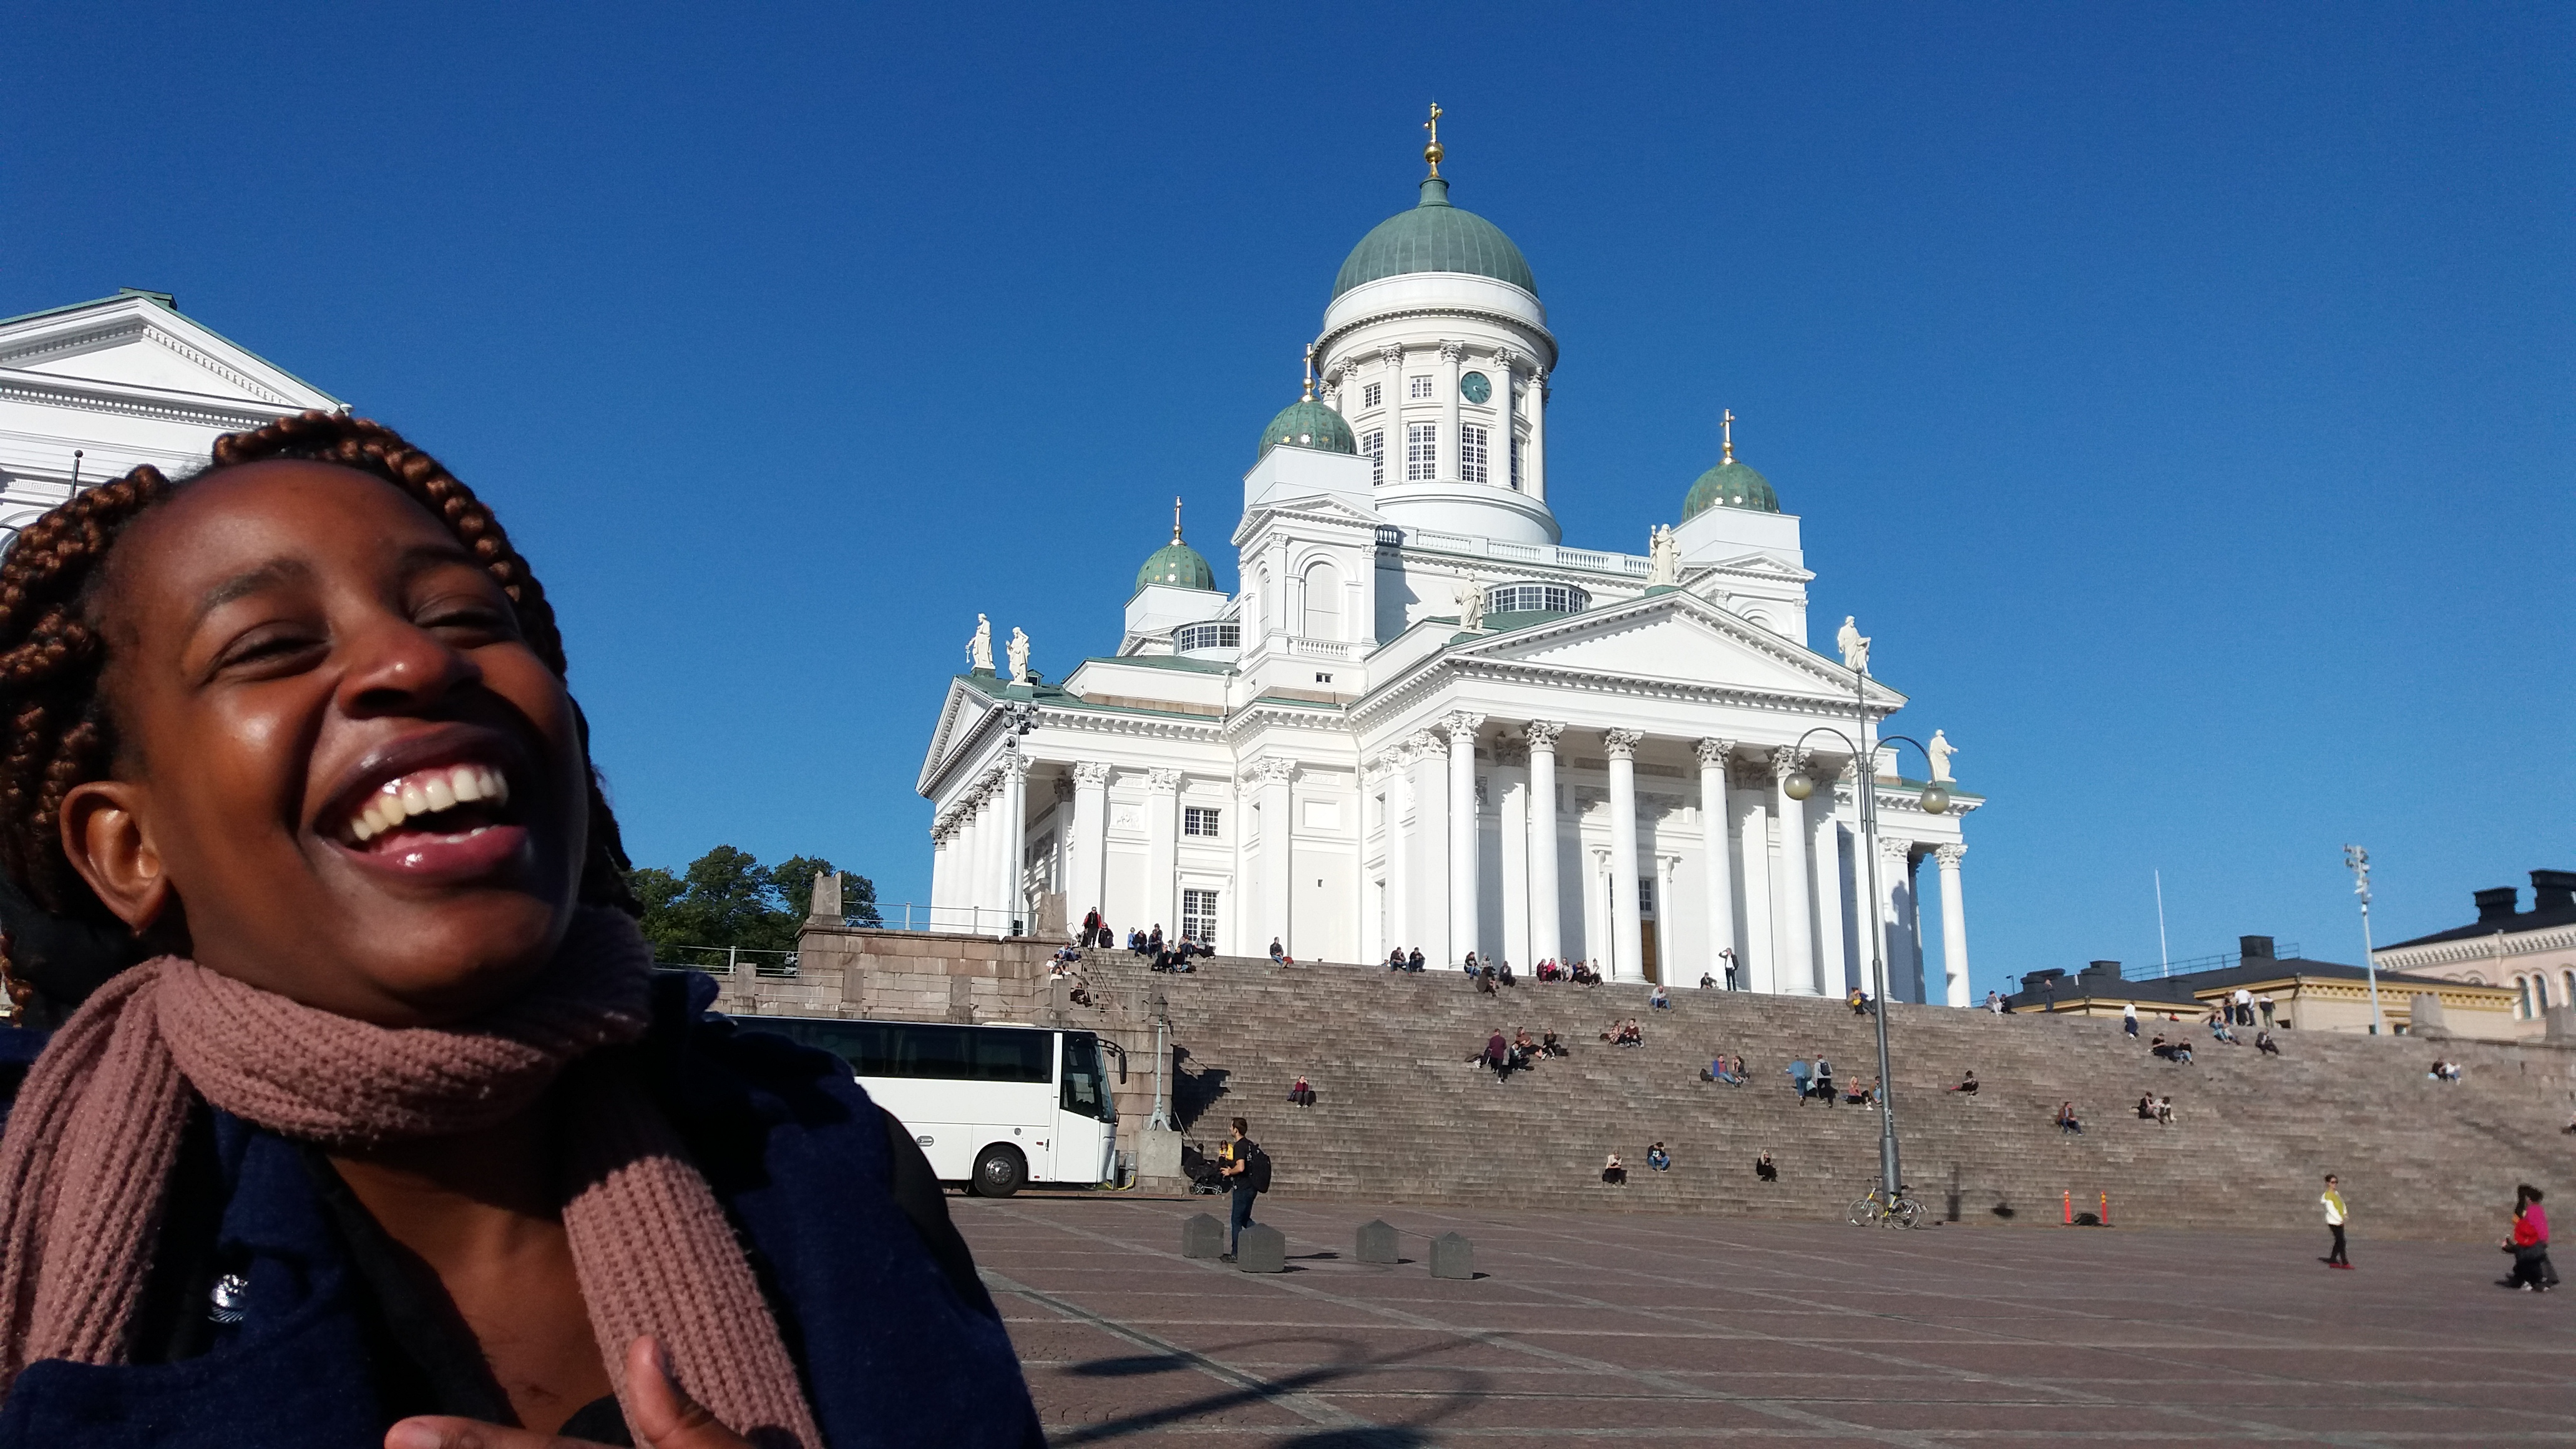 [Image: Prisca's Study Week in Finland]